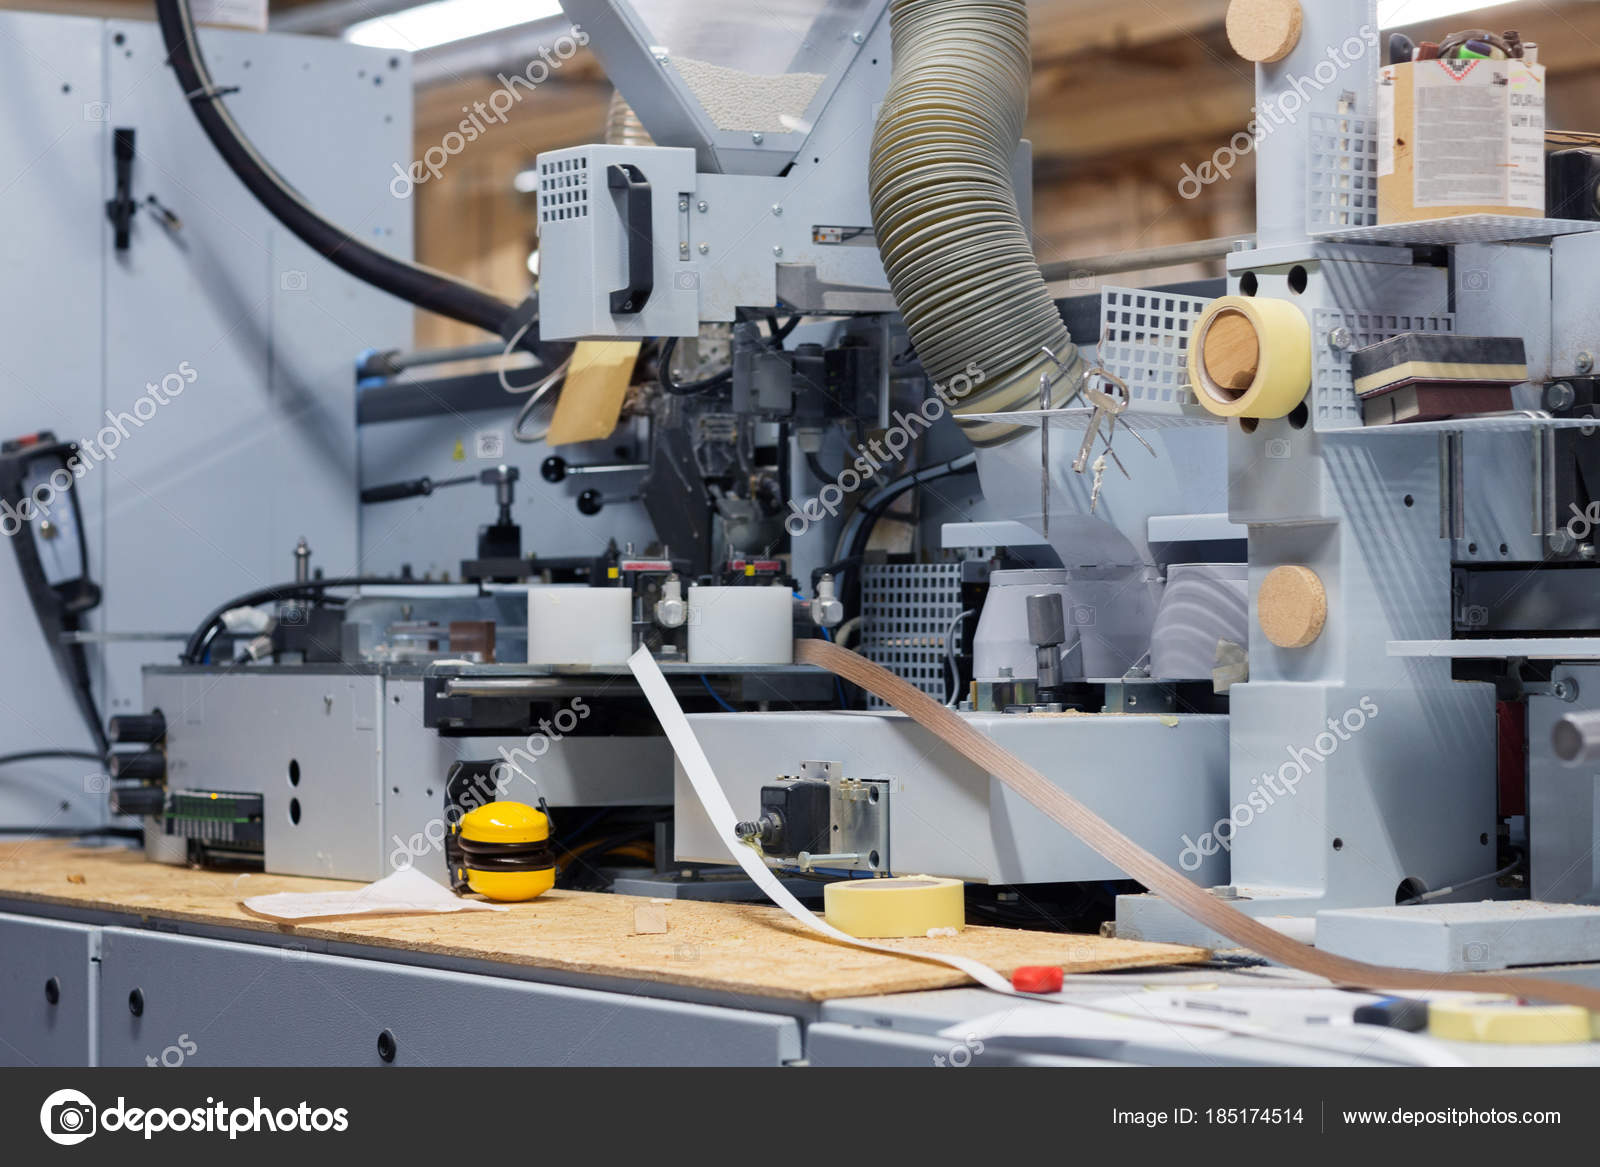 veneer or edge banding machine at factory — Stock Photo